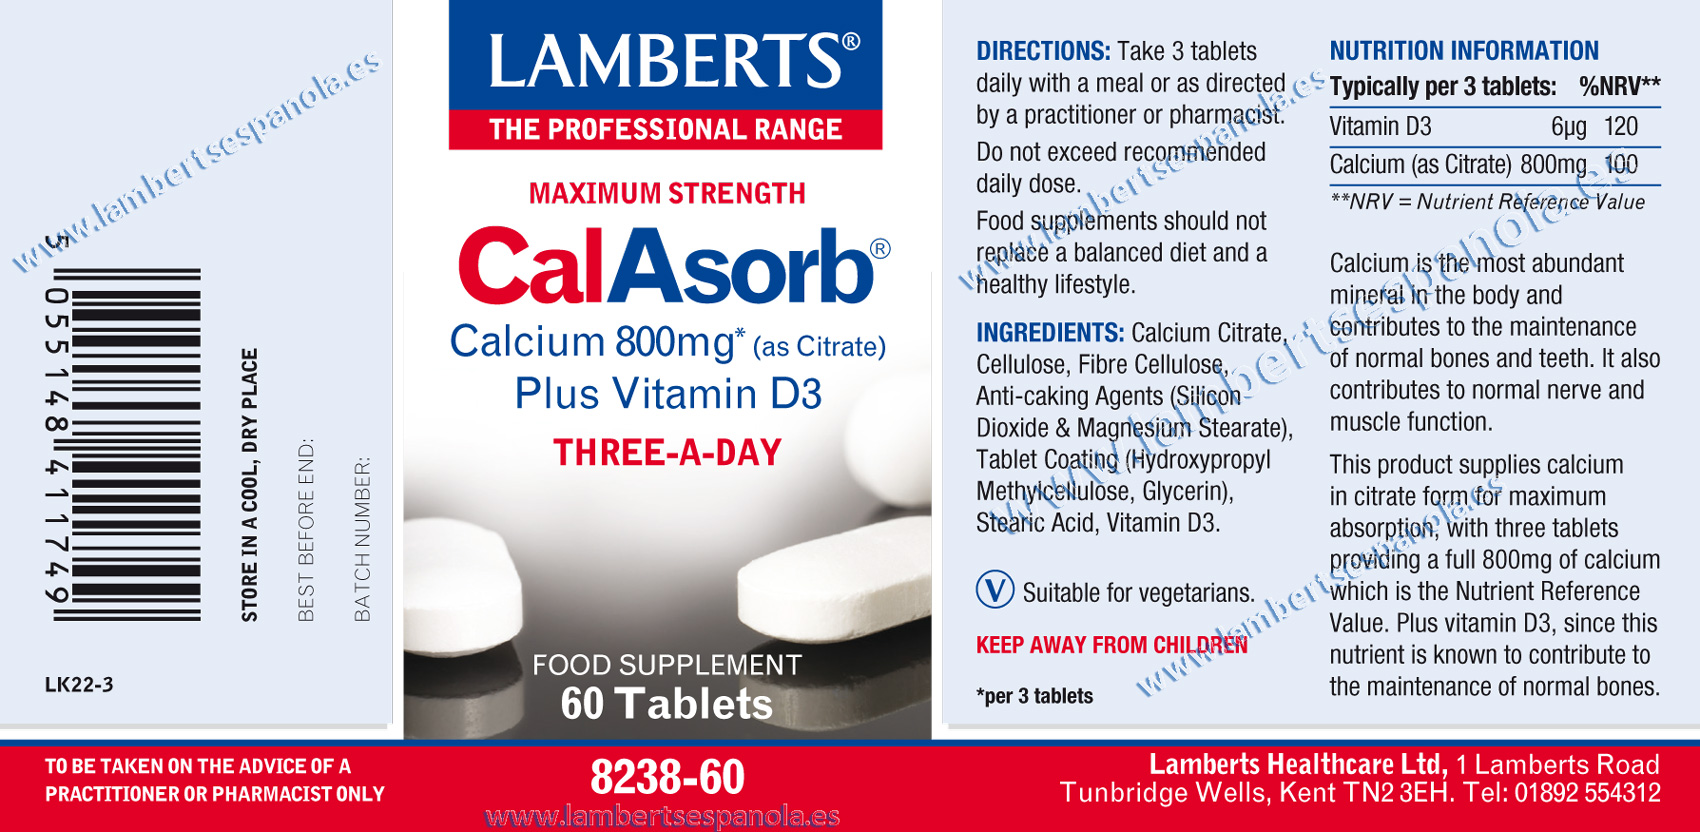 Lamberts Calasorb properties label